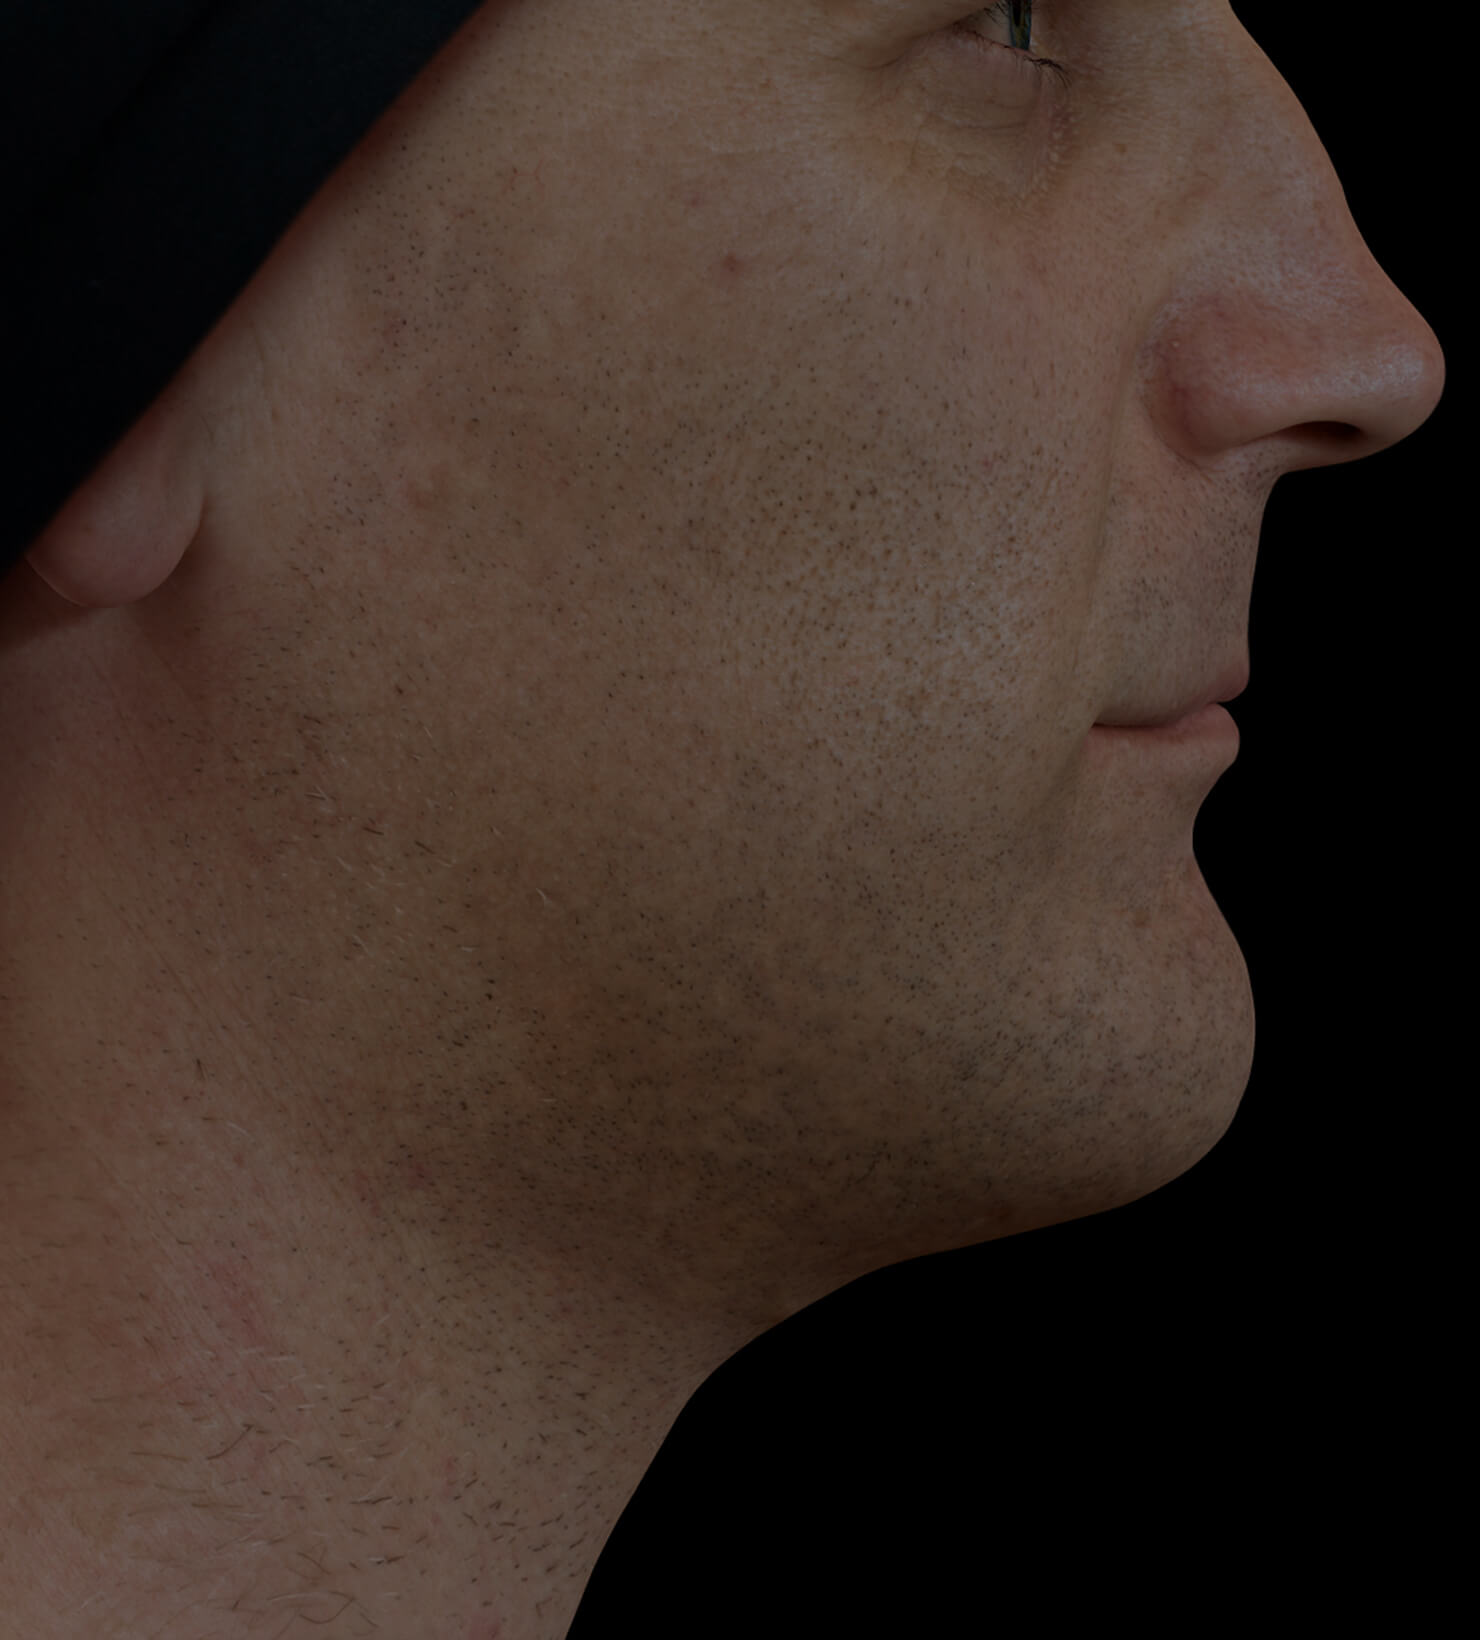 Clinique Chloé male patient with poor jawline definition treated with Profound RF for a more defined jawline